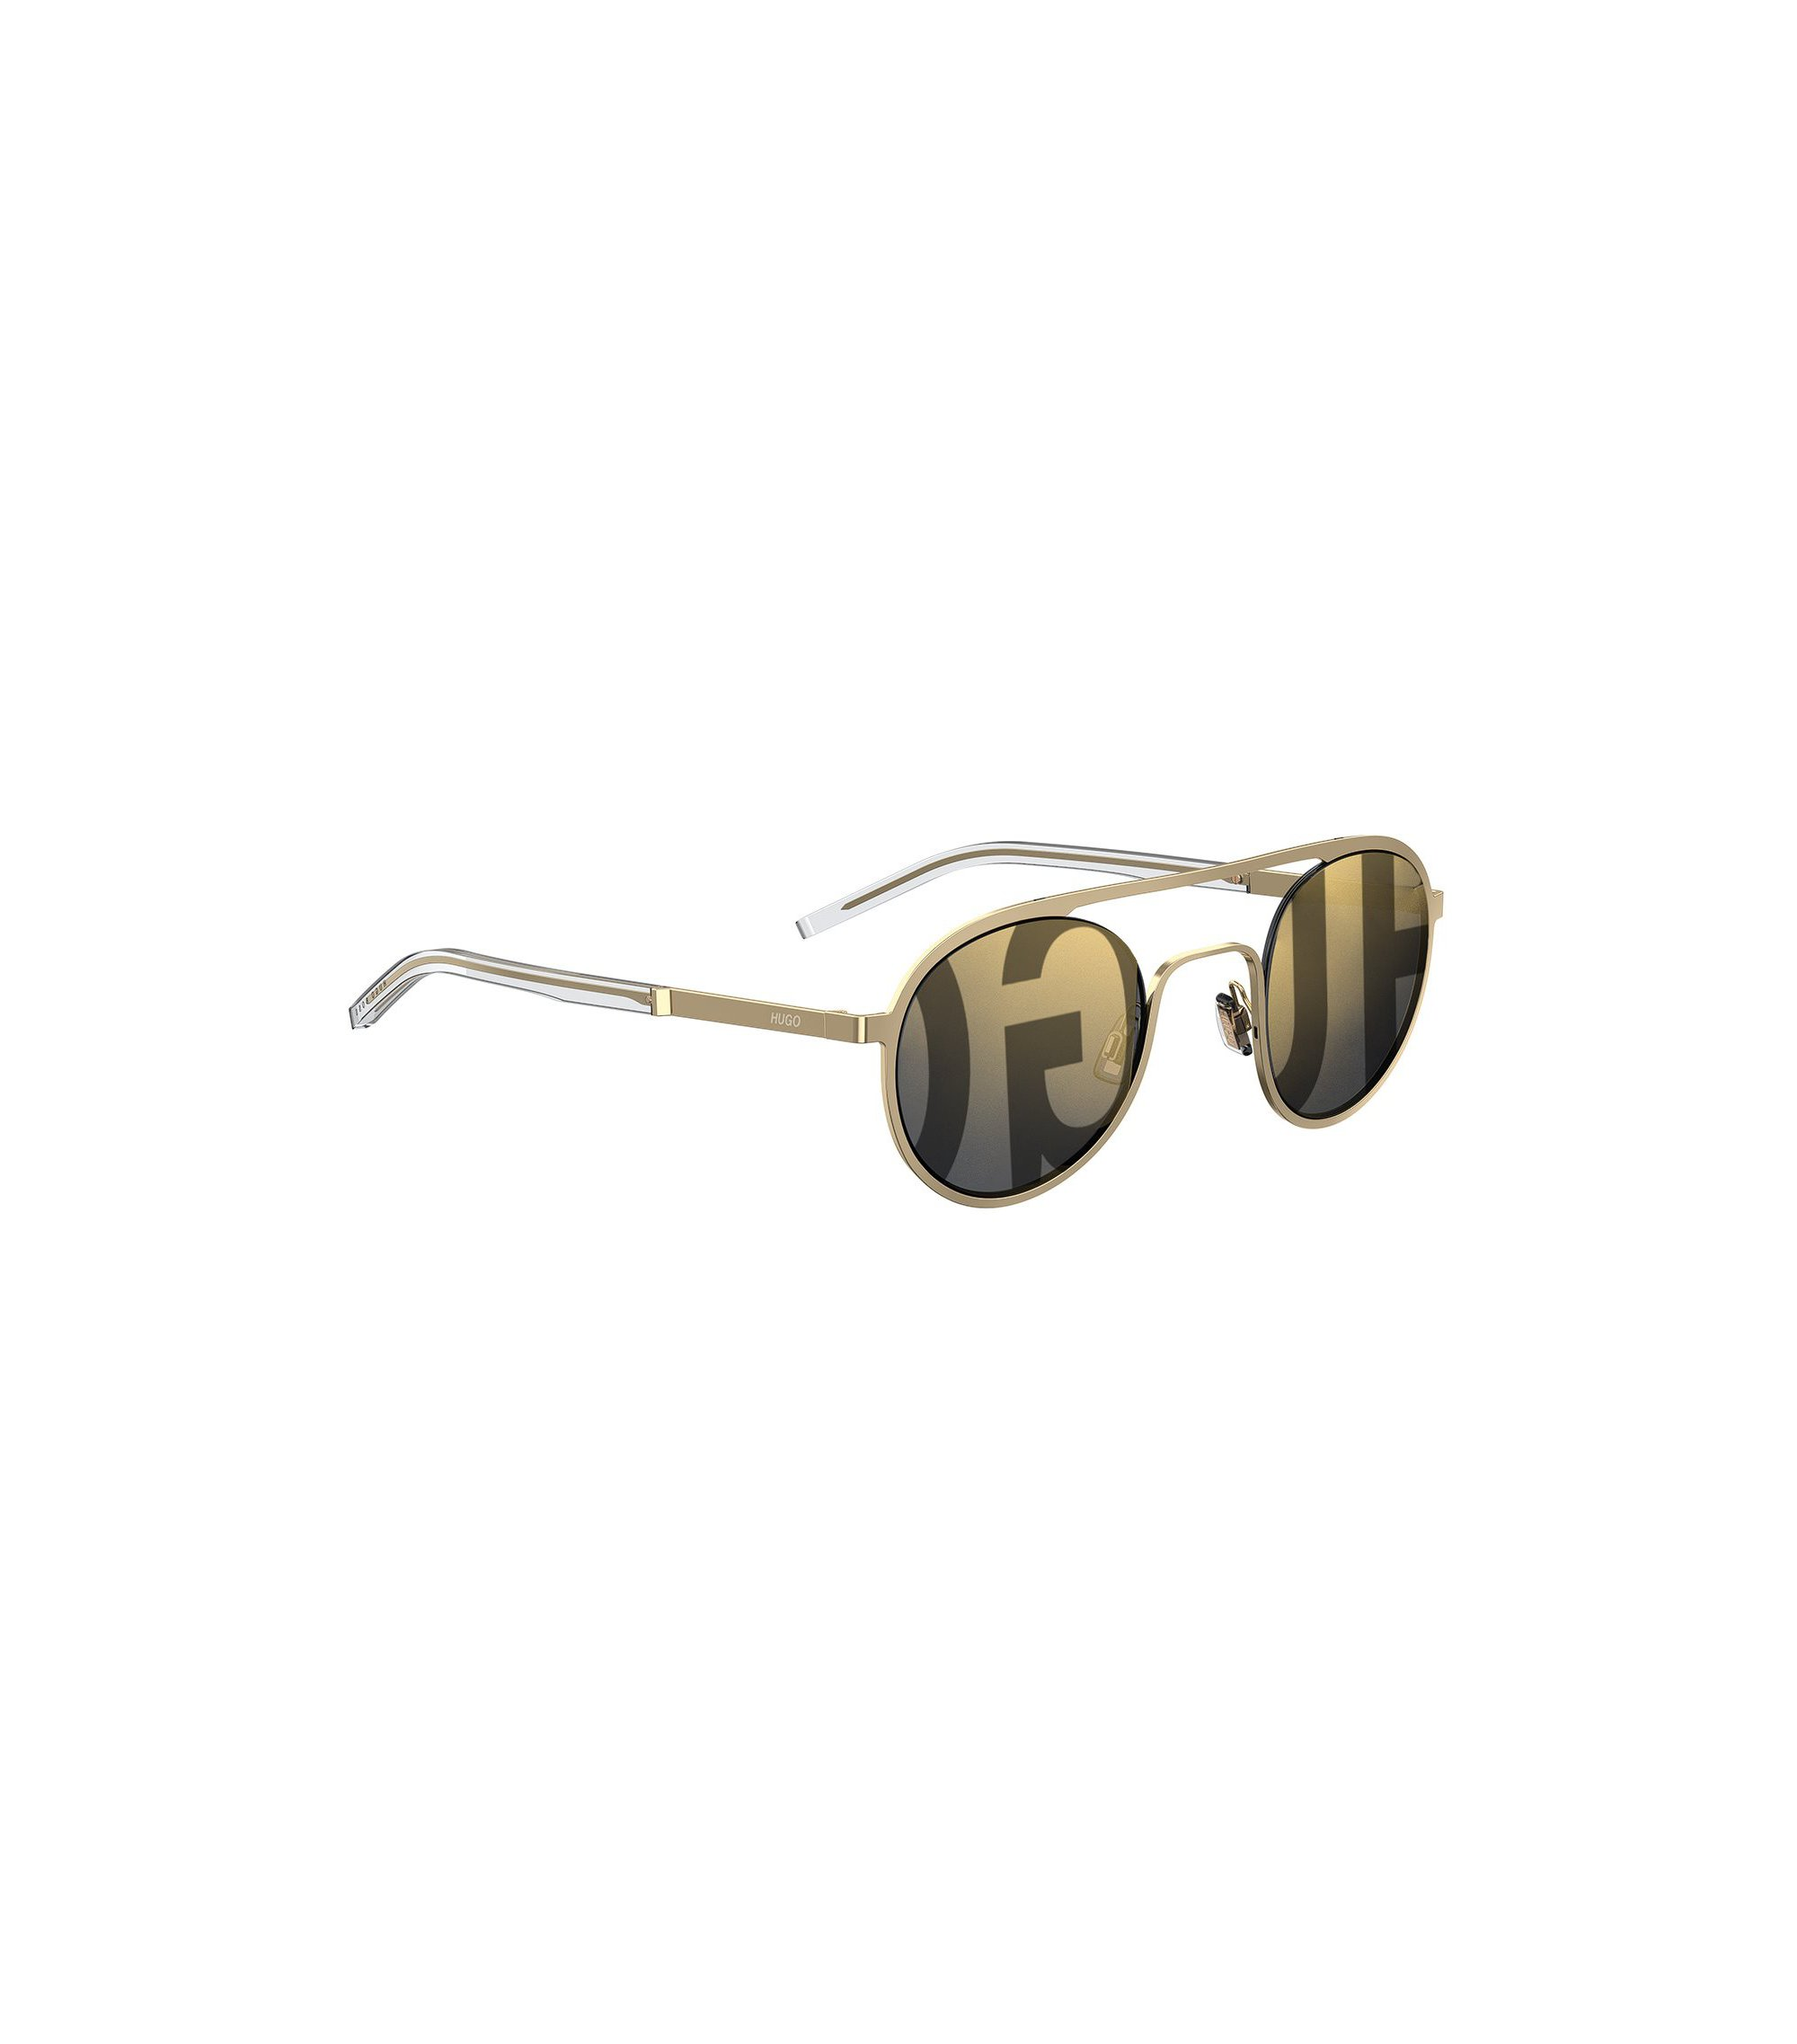 Unisex gold-tone round sunglasses with logo lenses, Gold